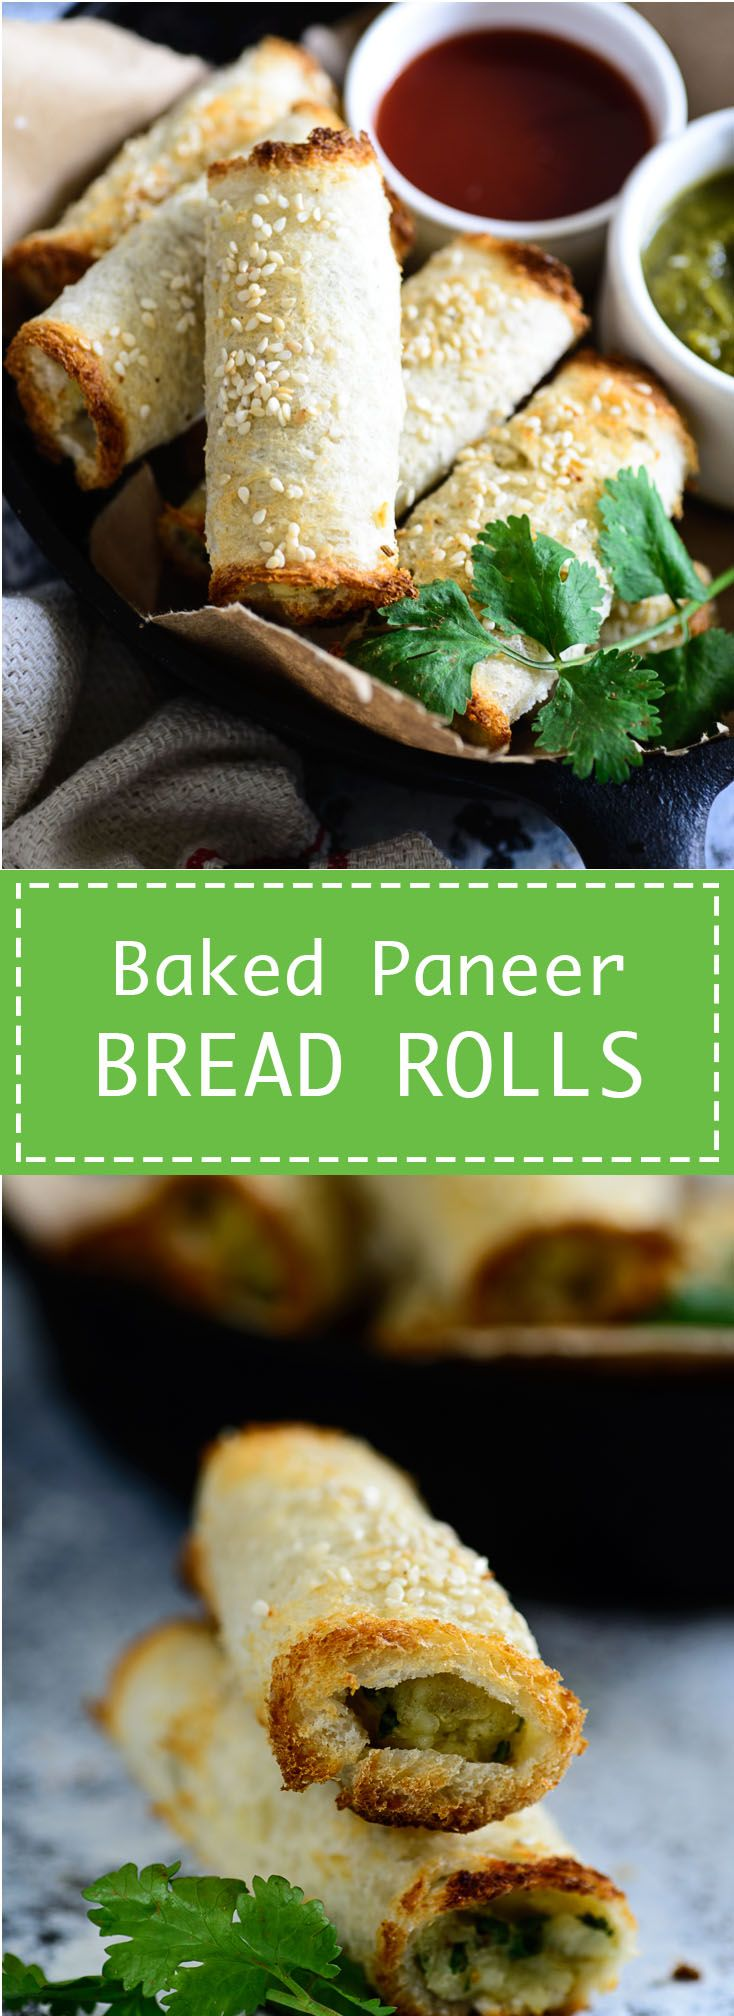 Baked Paneer Bread Rolls. Healthy and delicious snacks filled with Indian cottage cheese and potato filling. Food photography and styling by Neha Mathur